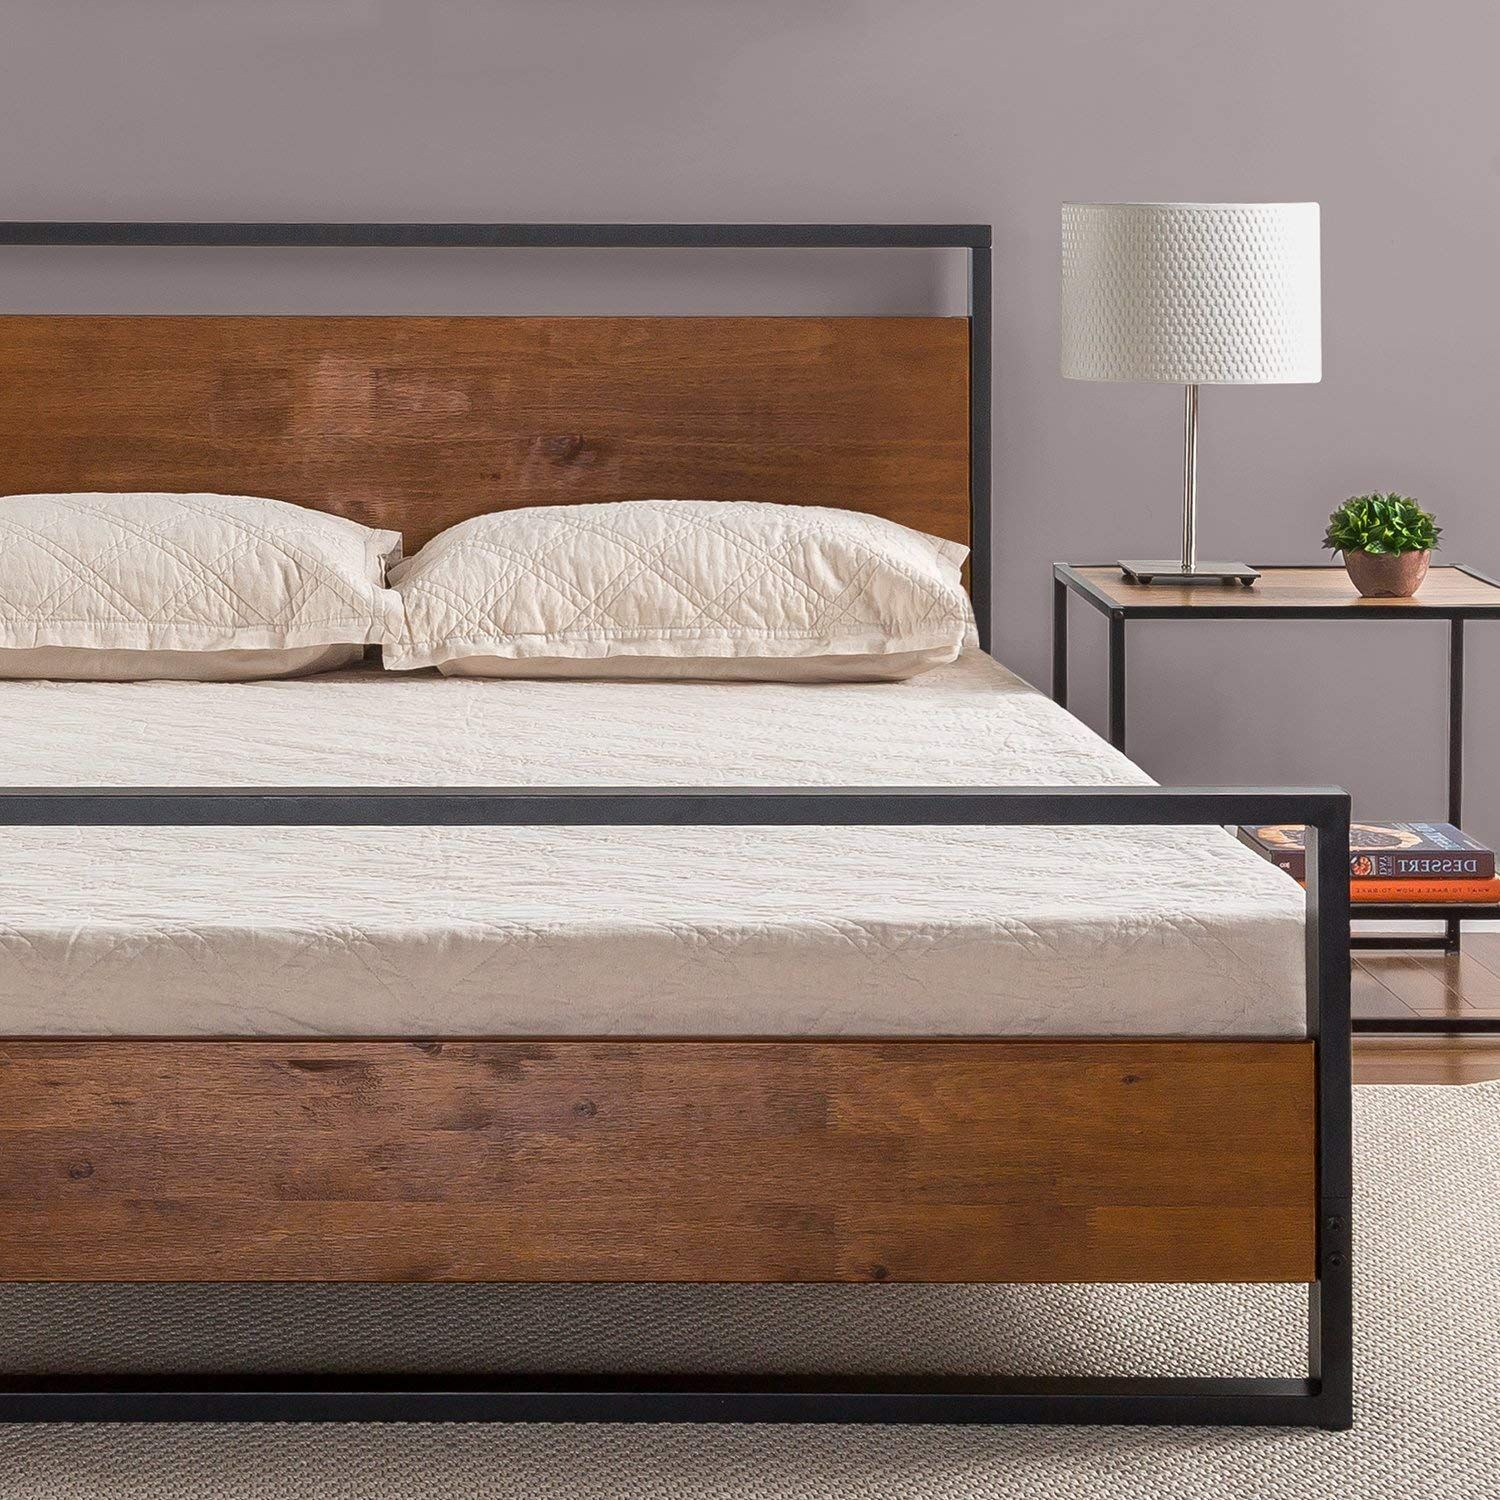 Zinus-Ironline-Metal-Wood-Bed-Frame-Queen-Single-Double-King-Base-Mattress-Pine thumbnail 12